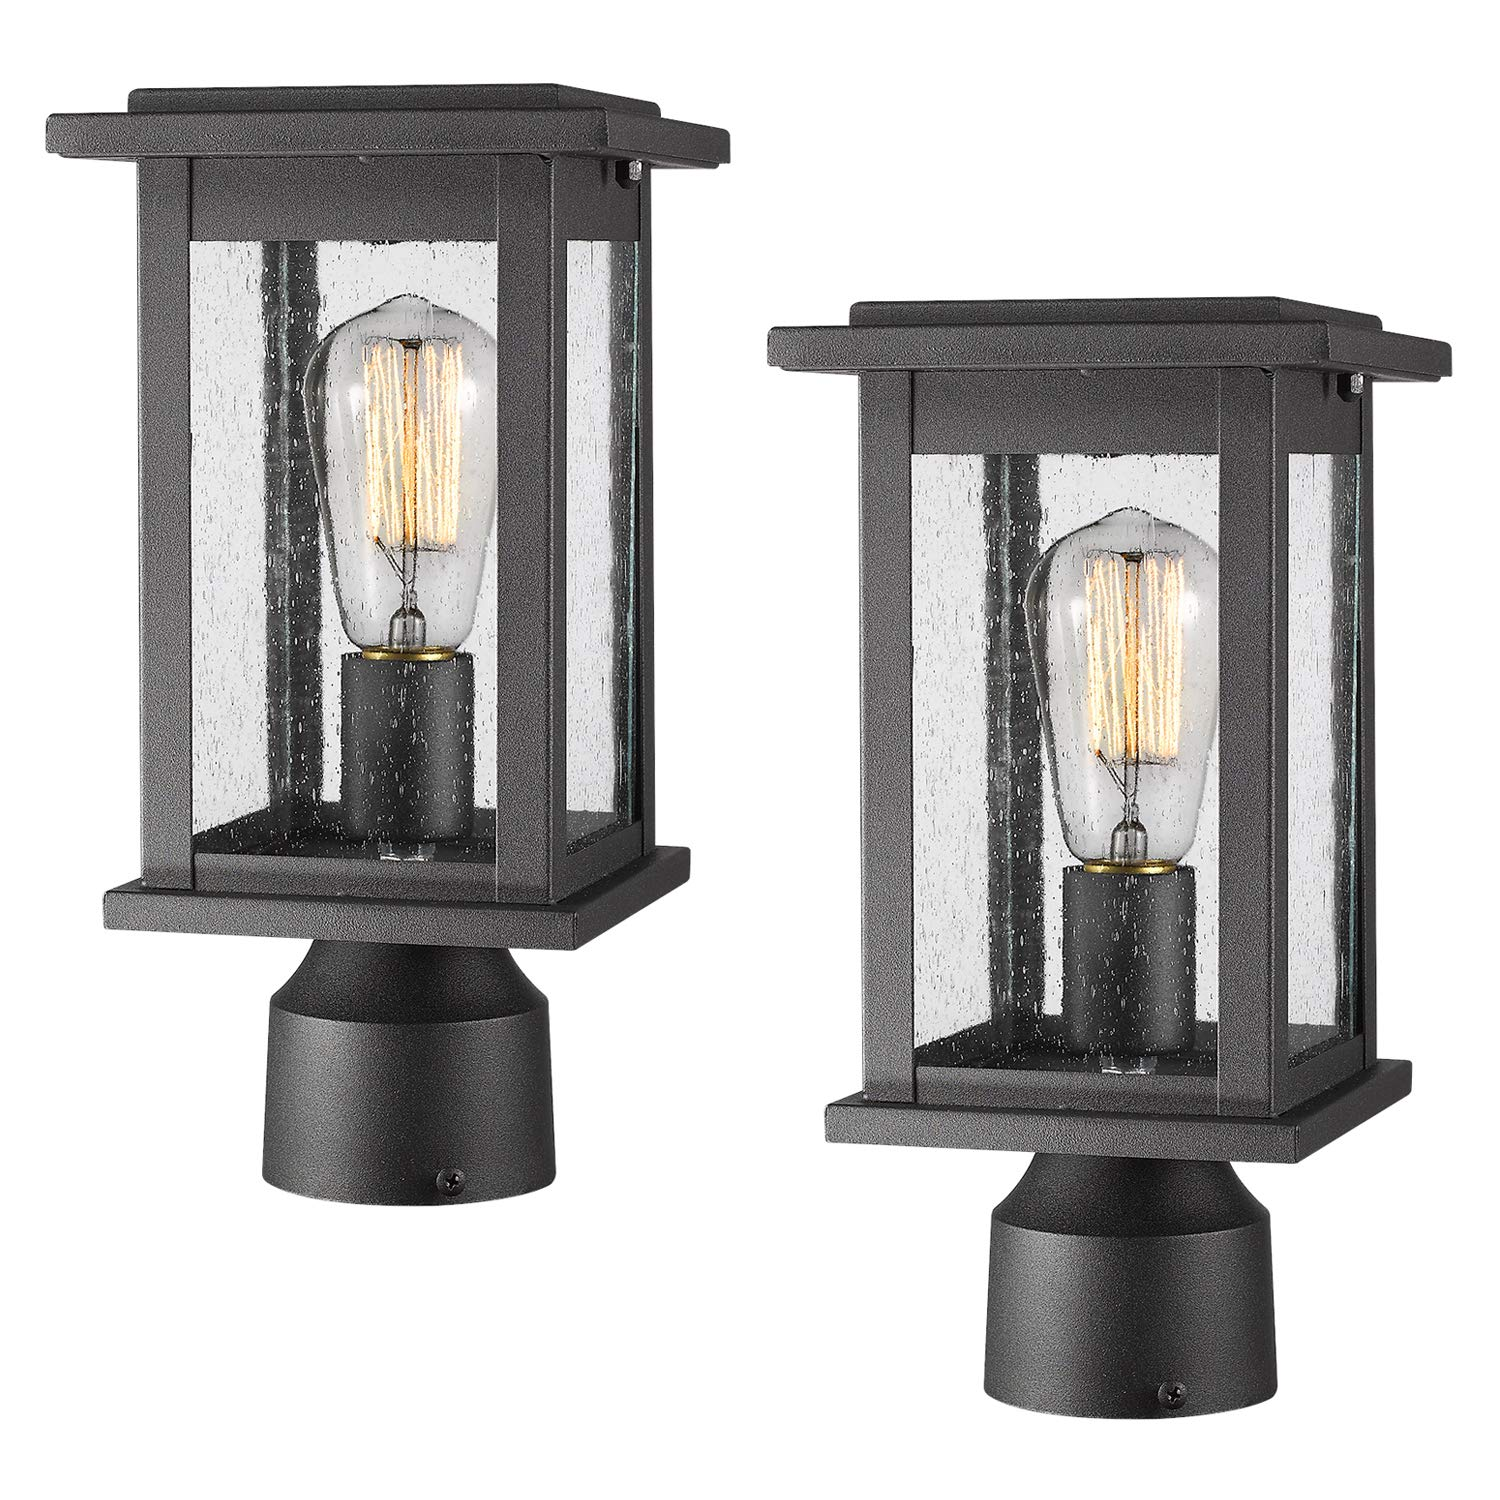 Emliviar Outdoor Post Light Fixtures 2 Pack, Exterior Pillar Light in Black Finish with Seeded Glass, 1803EW1-P-2PK by EMLIVIAR